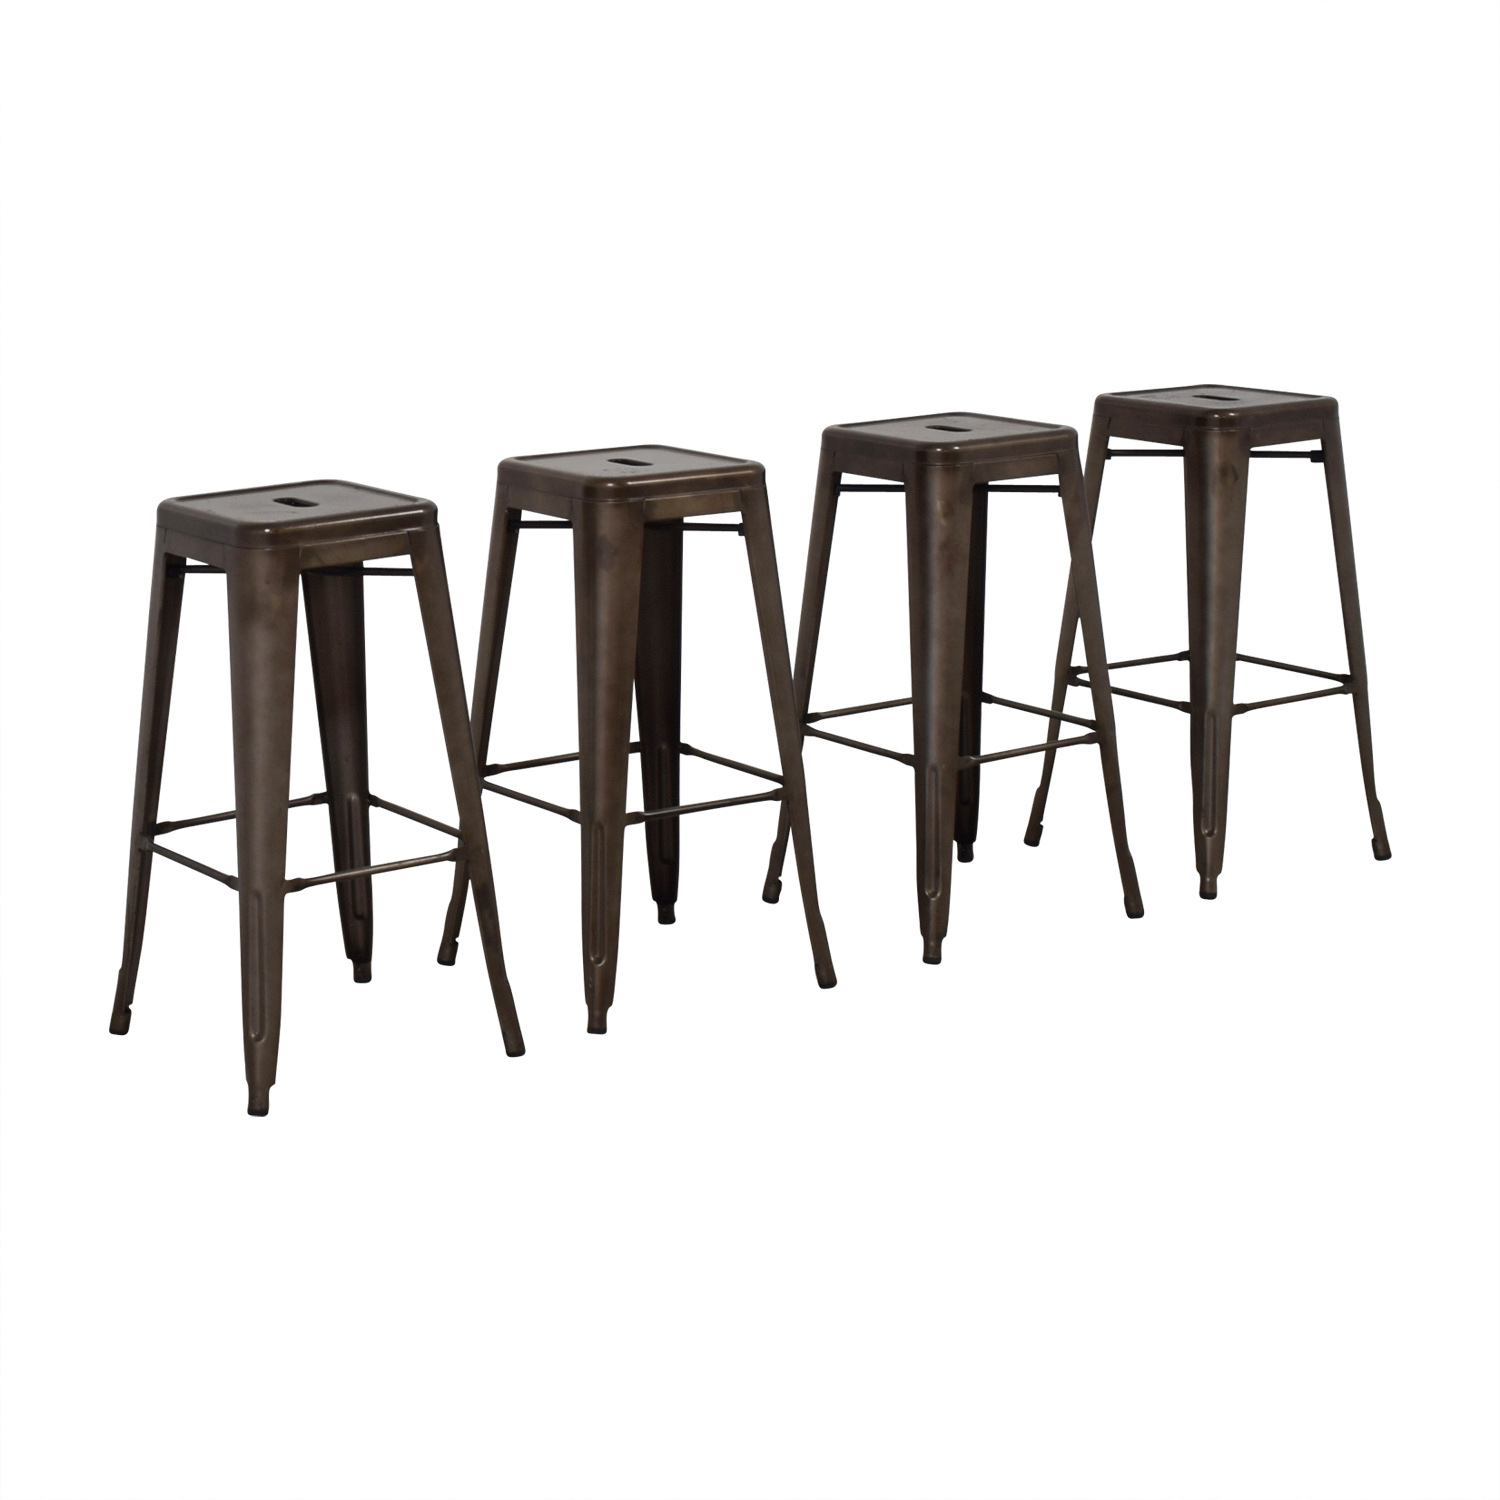 Tabouret Style Industrial Rustic Distressed Metal Bar Stools / Chairs